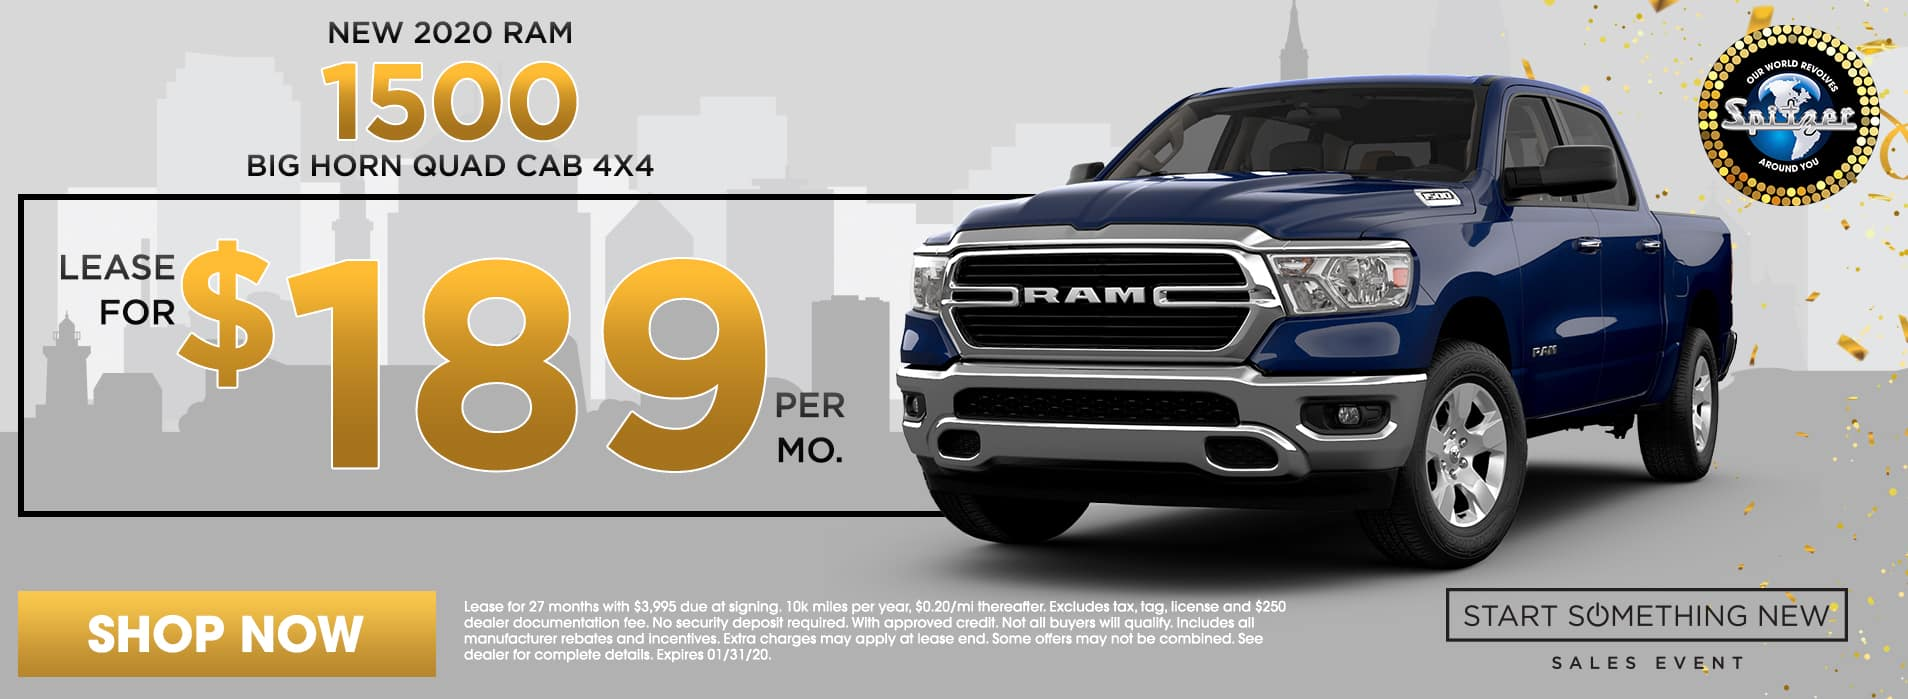 RAM 1500 | Lease for $189 per mo